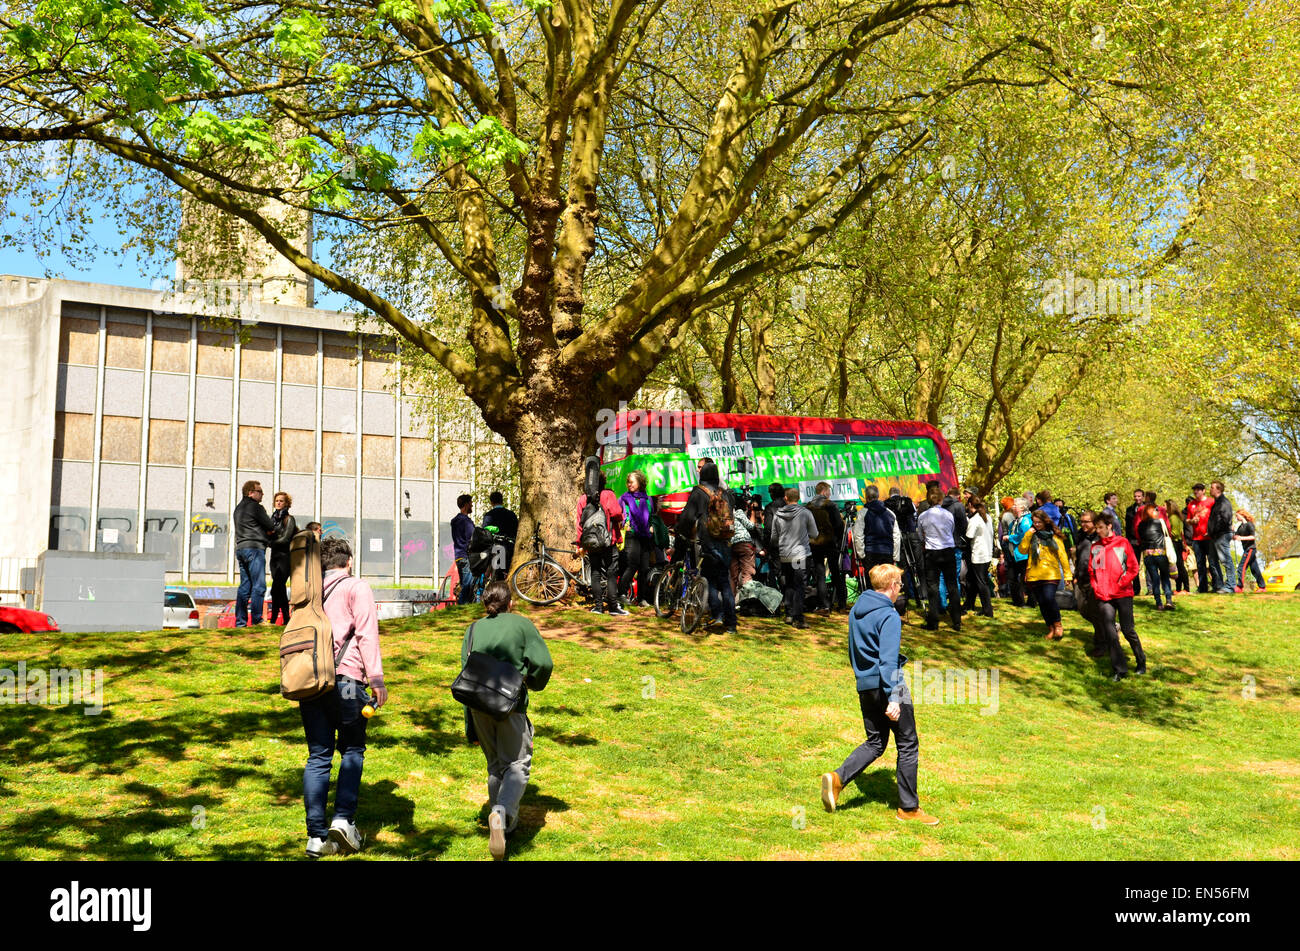 Bristol, UK. 28th Apr, 2015. Green party campaign Bus In Bristol with speaches given by Darren Hall MP Candidate - Stock Image